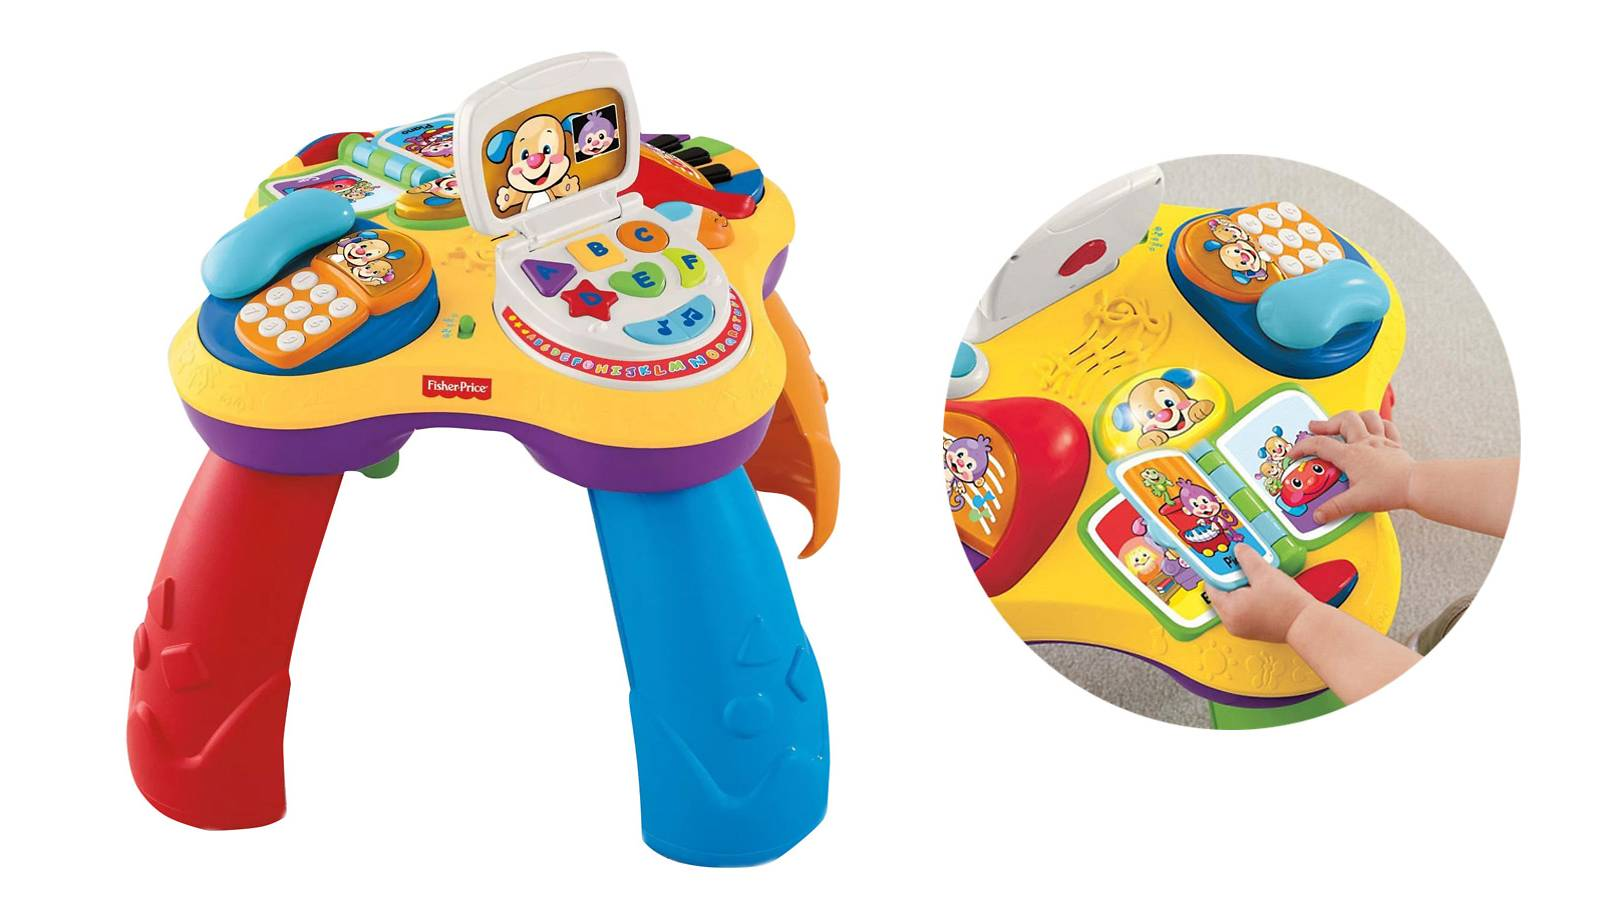 Babies-BUYERS'GUIDE-Top-activity-gyms-for-bubba-FISHER-PRICE-TABLE